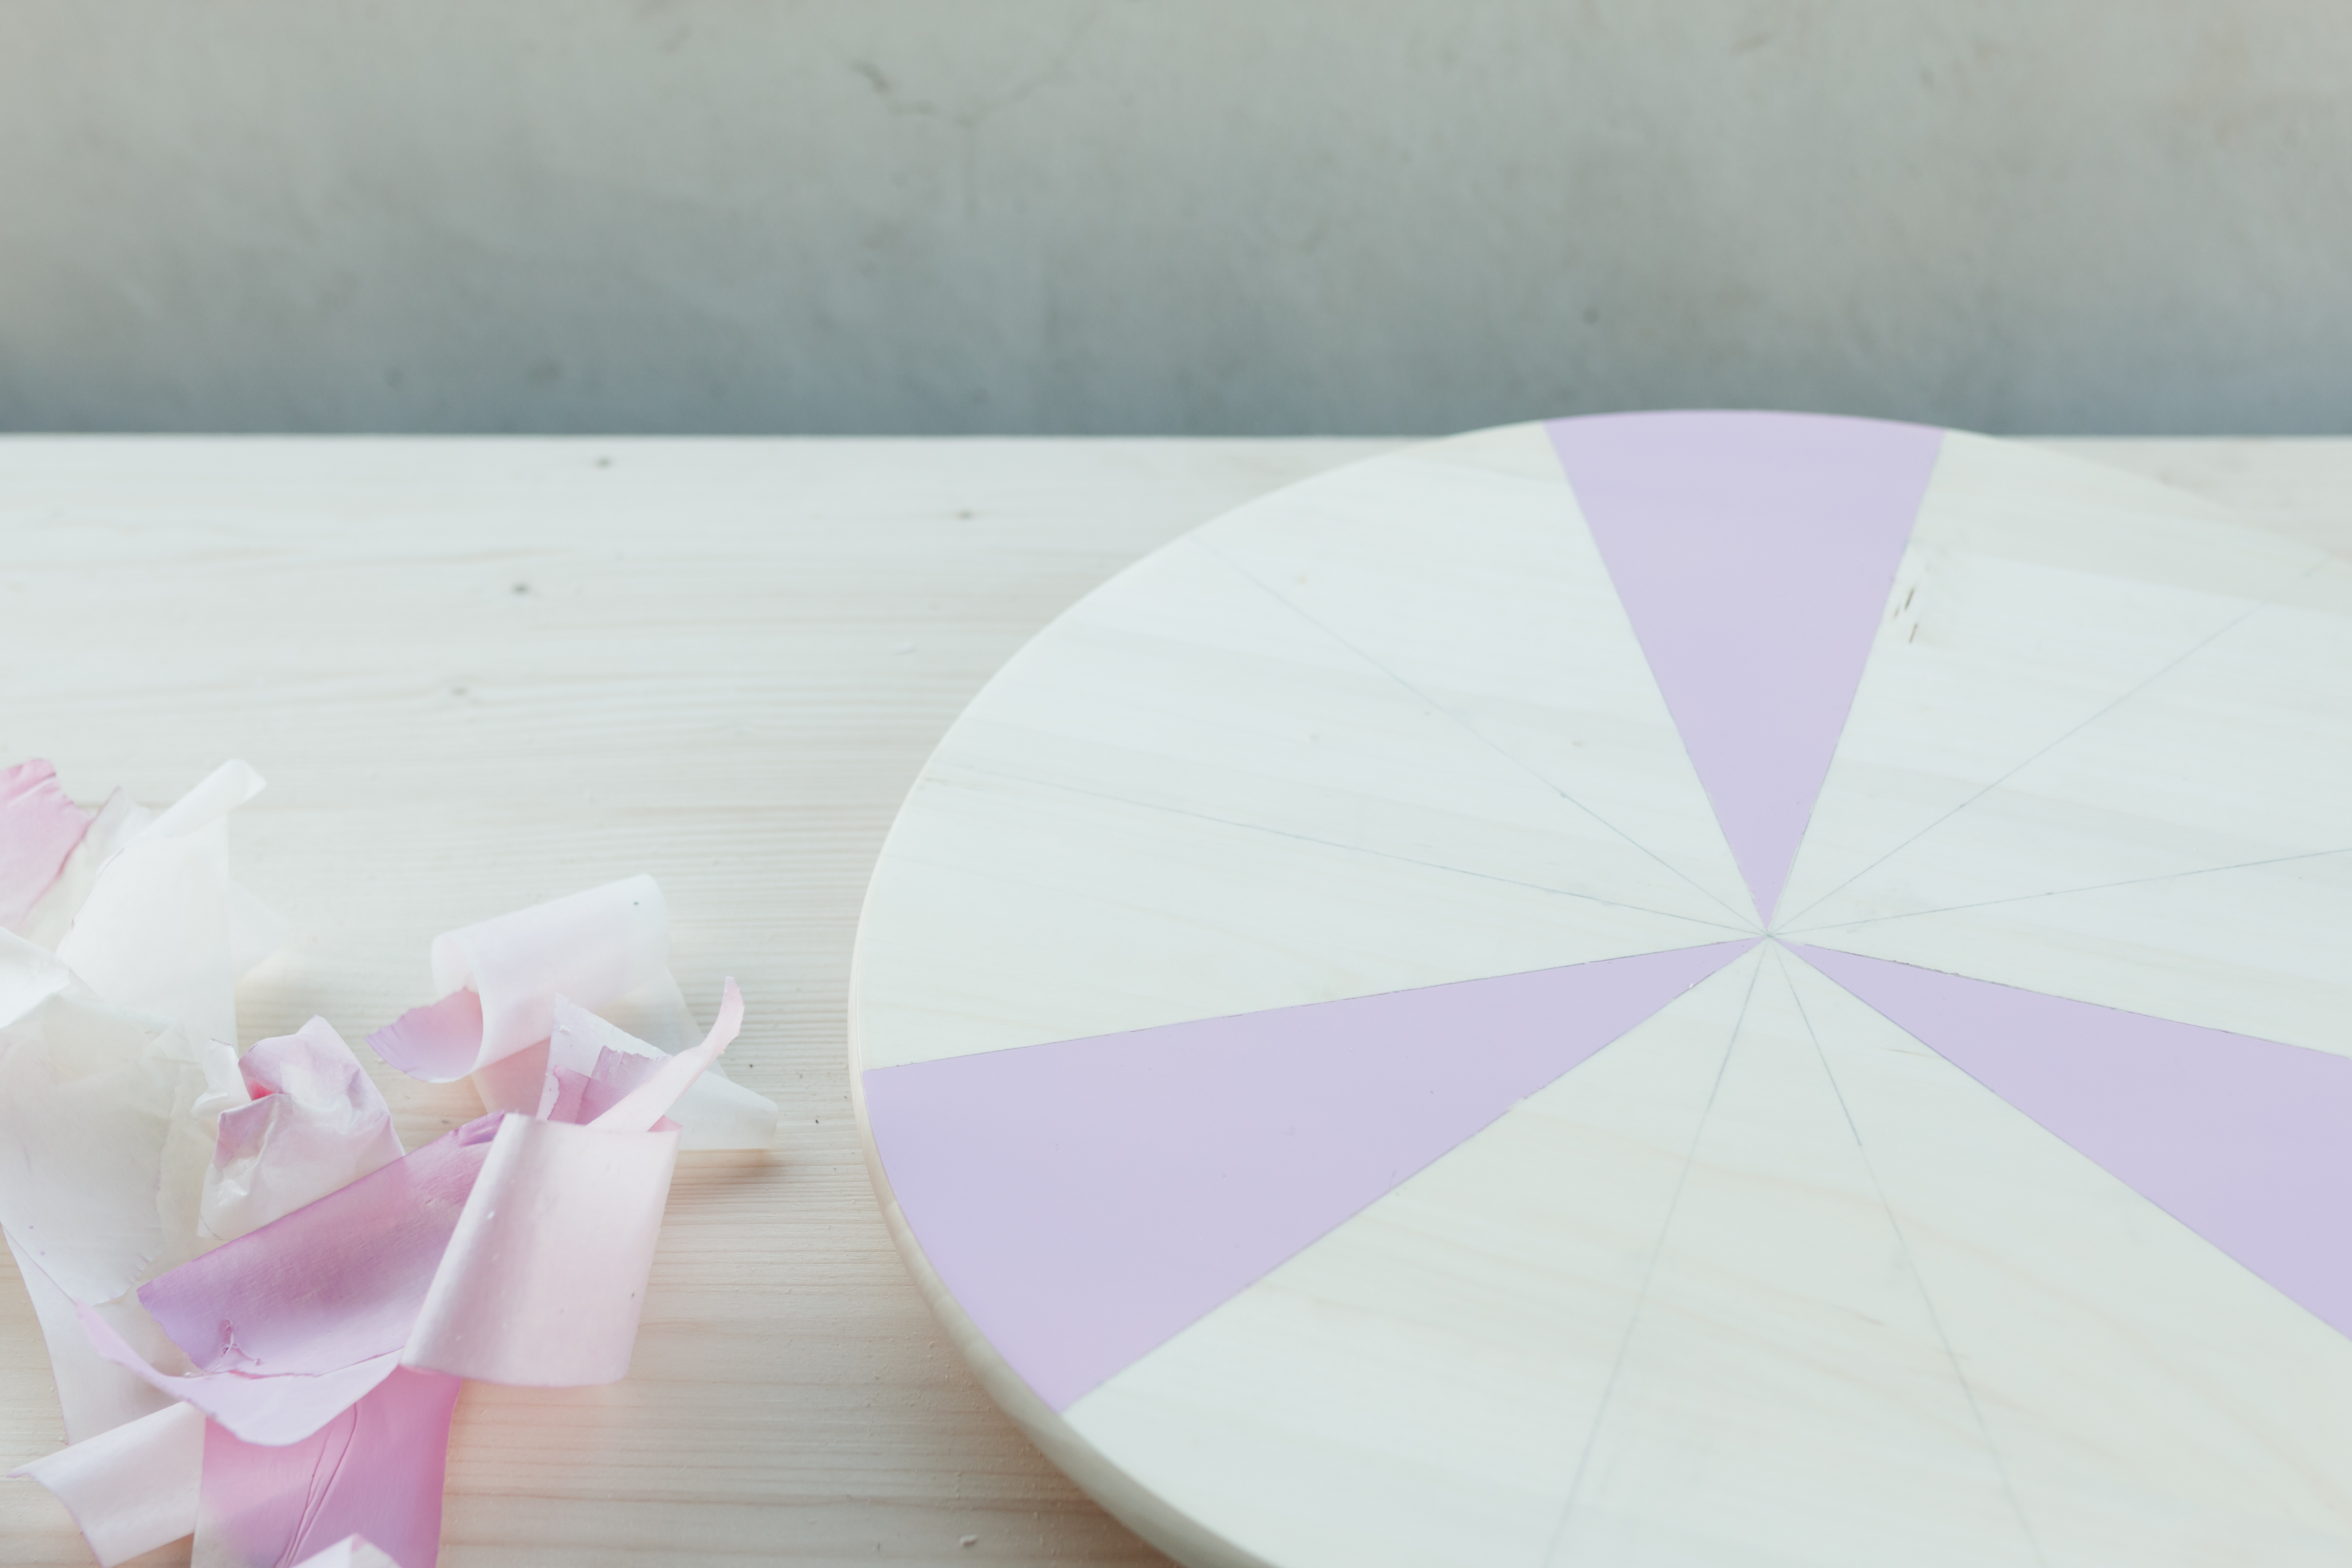 diy-roue-de-la-fortune-wheel-fortune-i-sp4nkblog-15